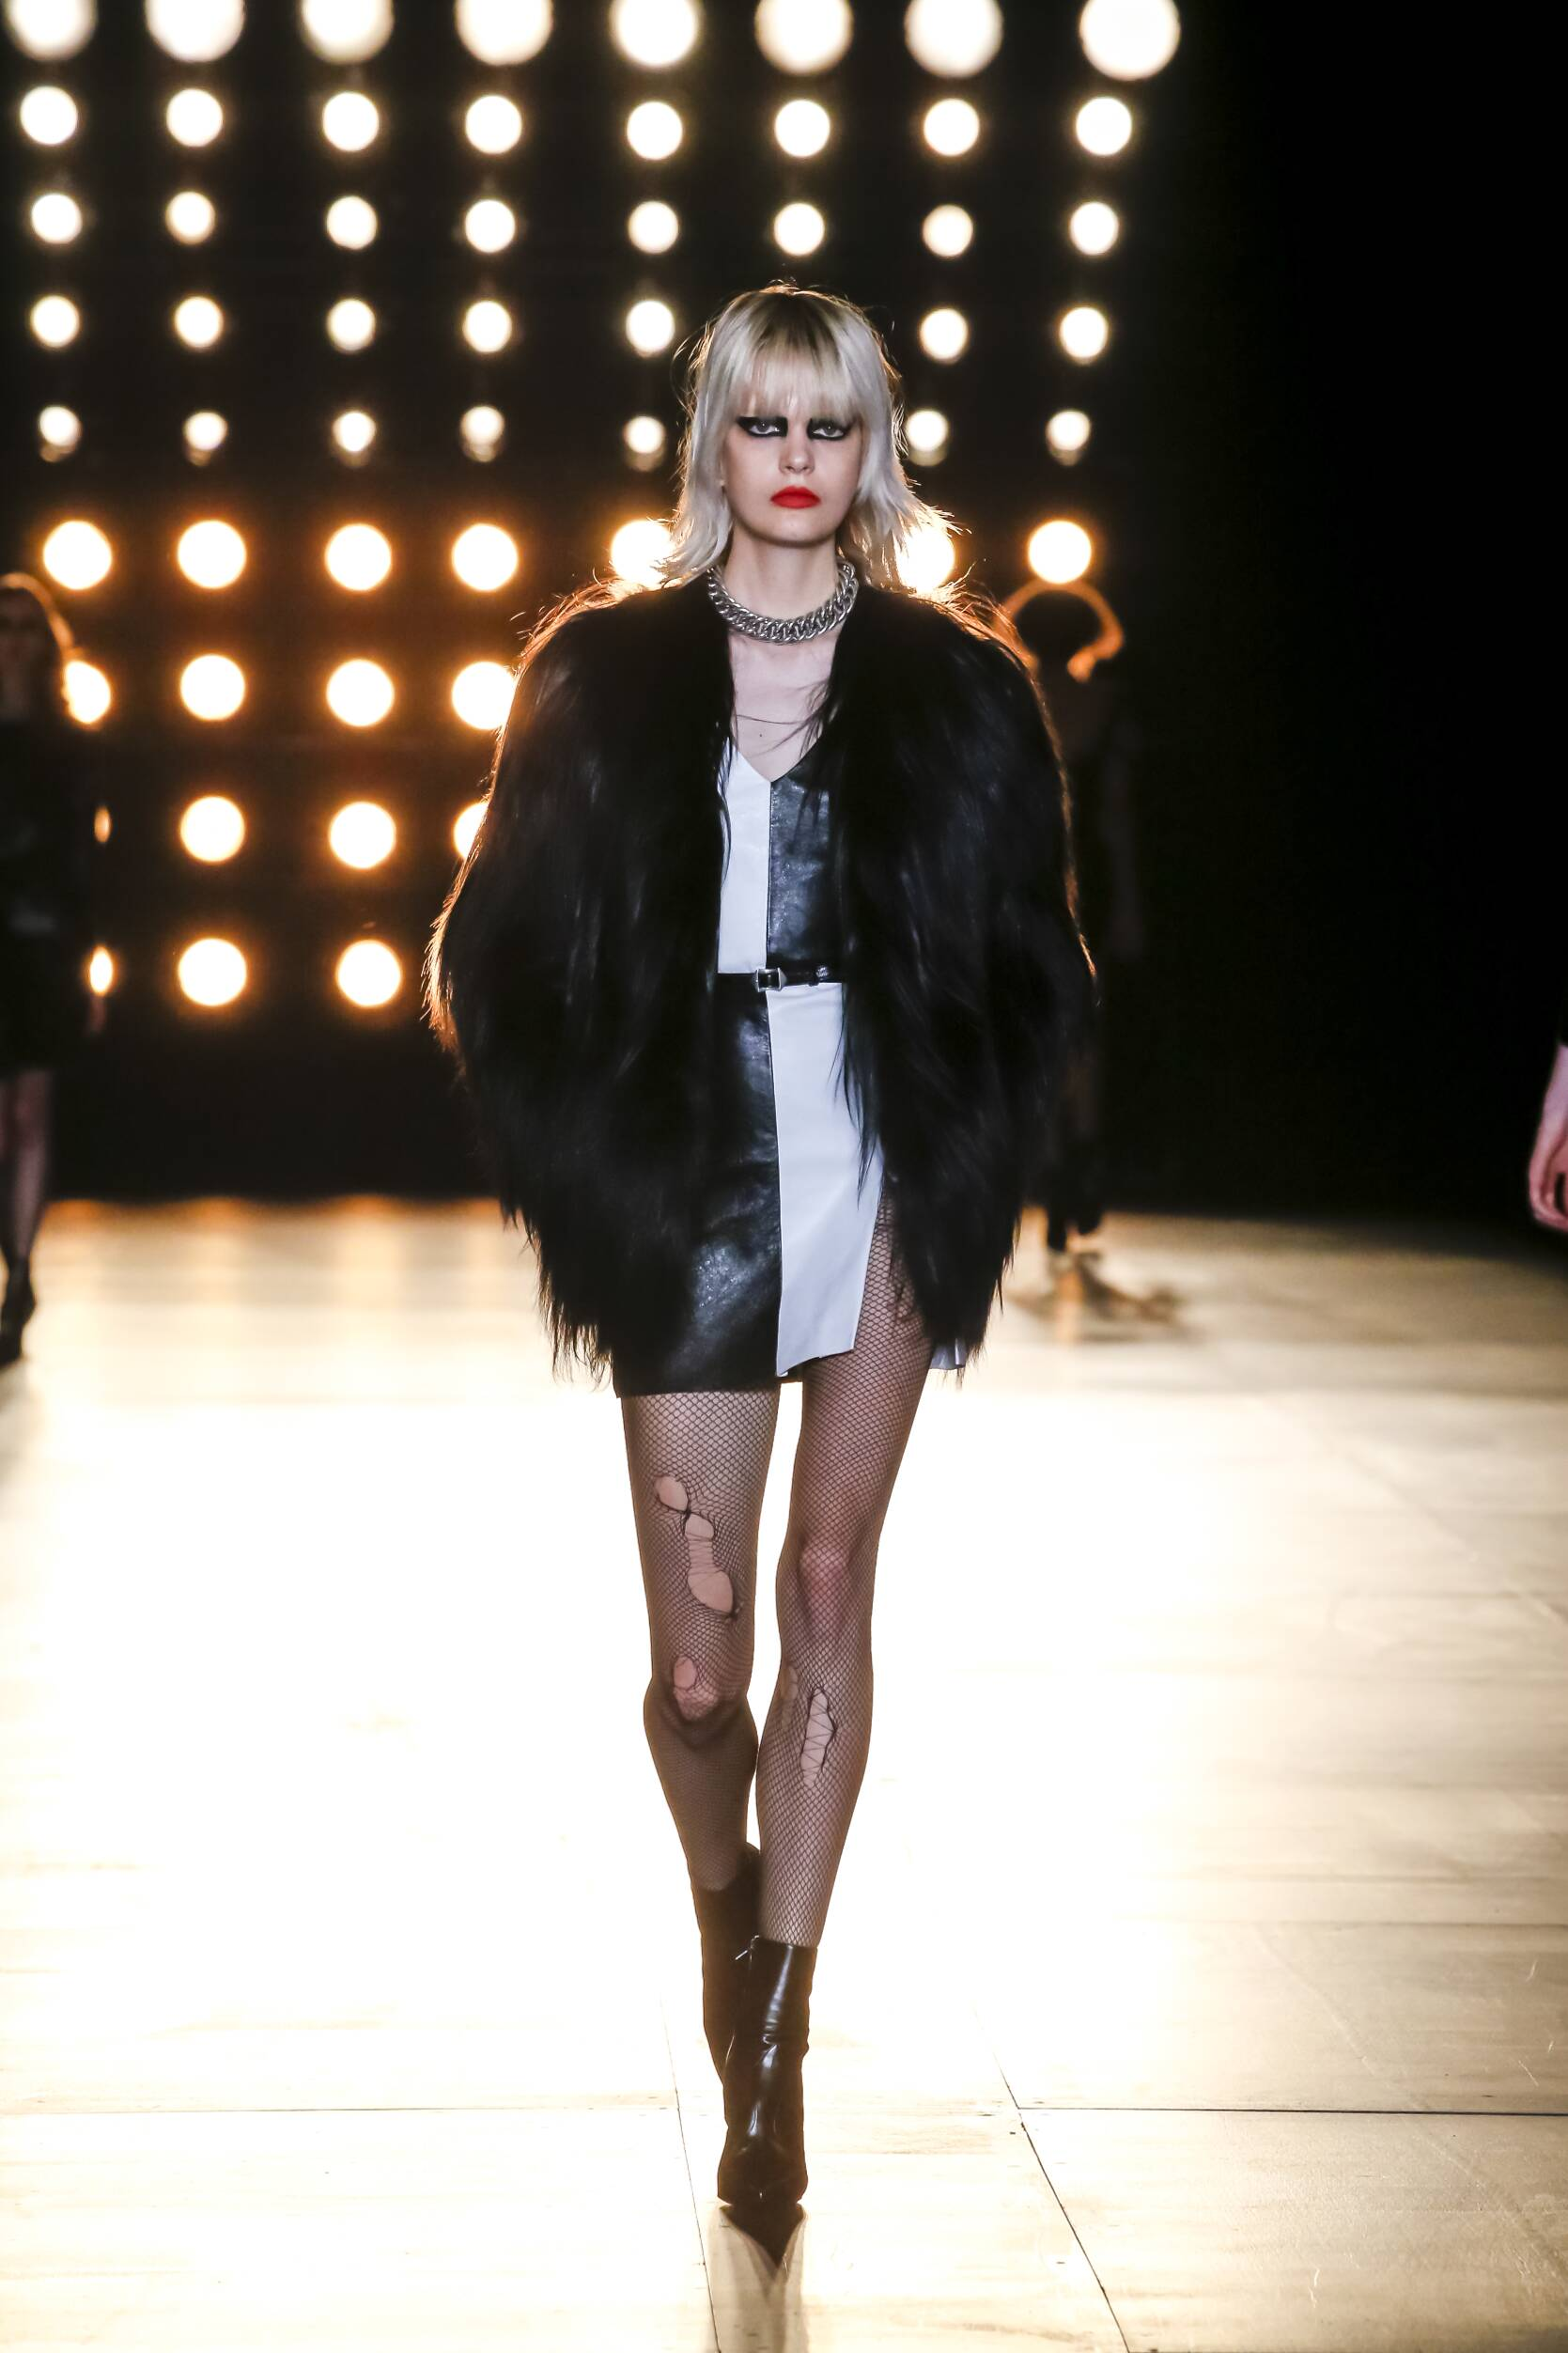 Fall Saint Laurent Collection Fashion Women Model